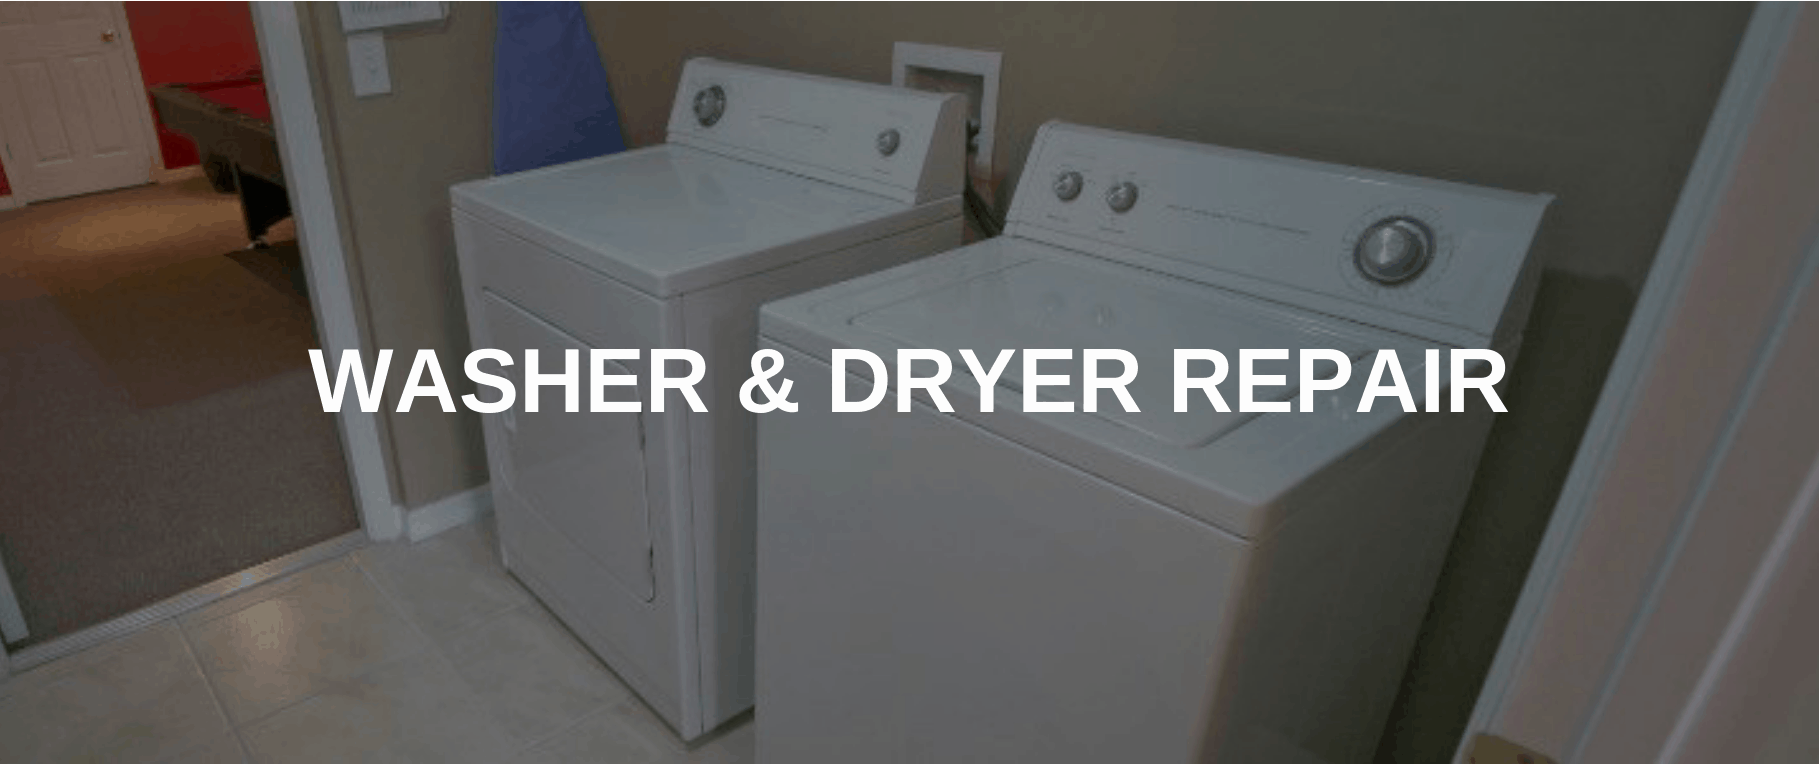 washing machine repair irving